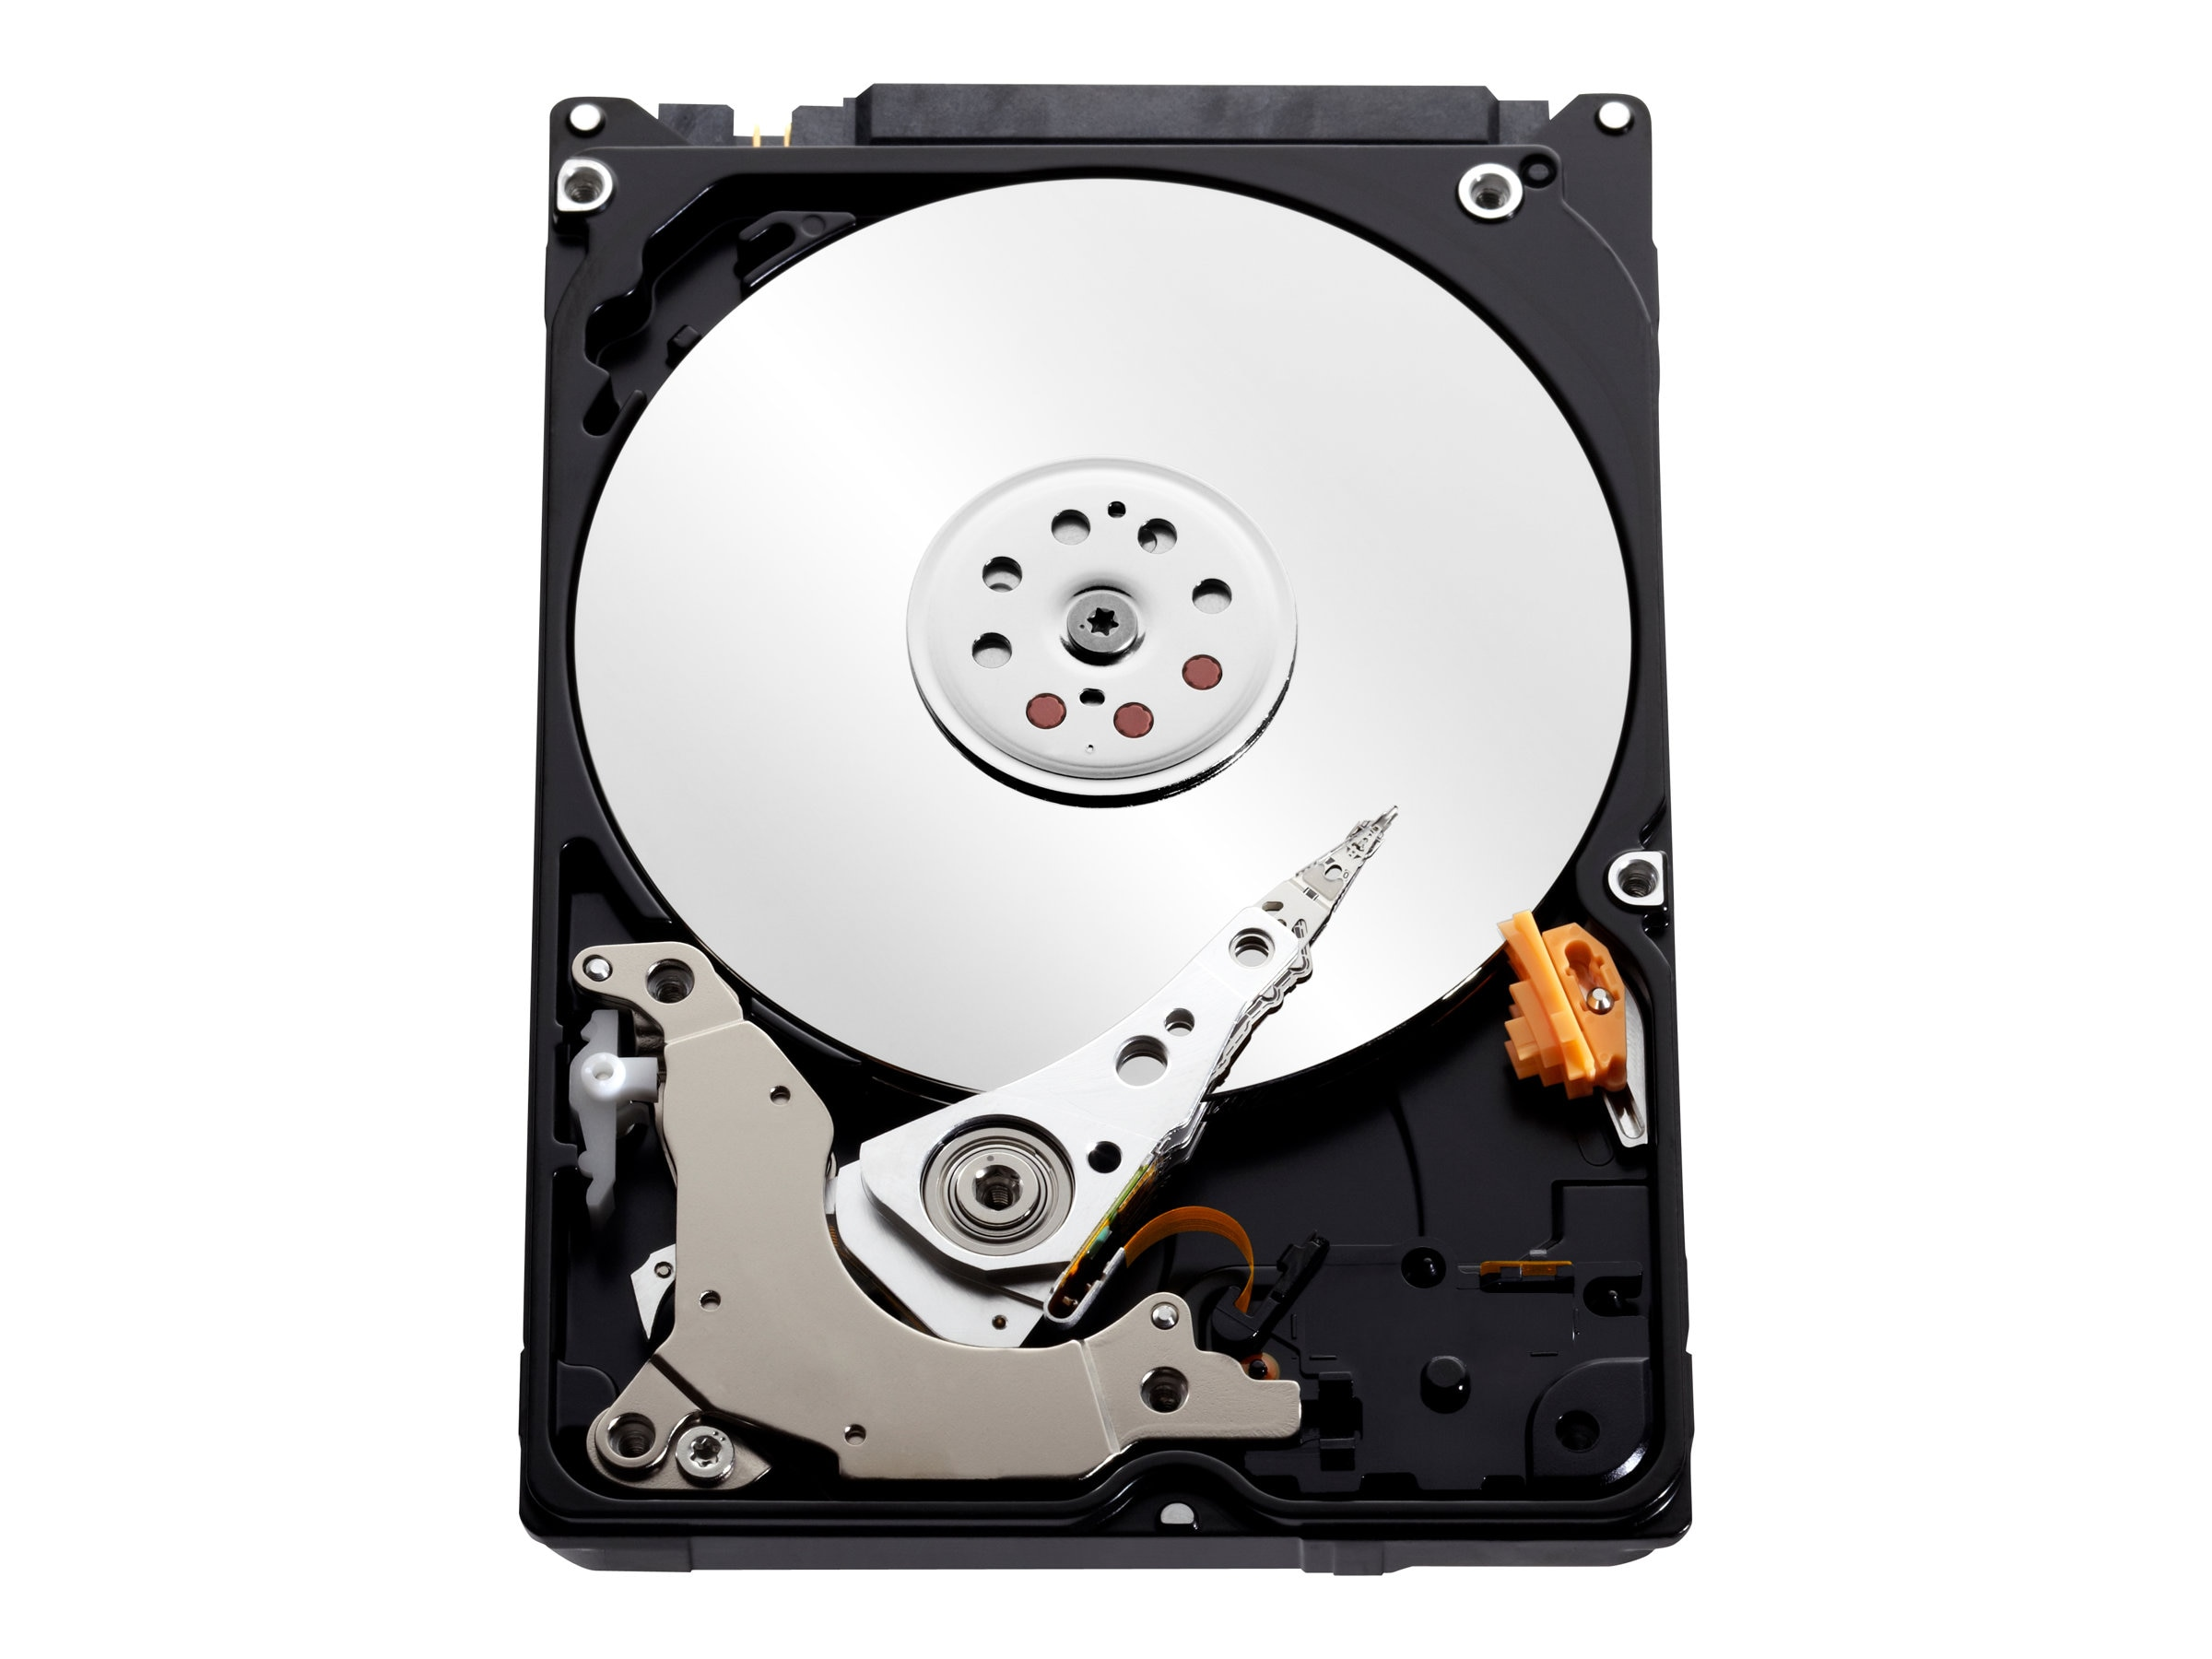 WD 1TB WD Blue SATA 6Gb s 2.5 Internal Hard Drive, WD10JPVX, 15593611, Hard Drives - Internal